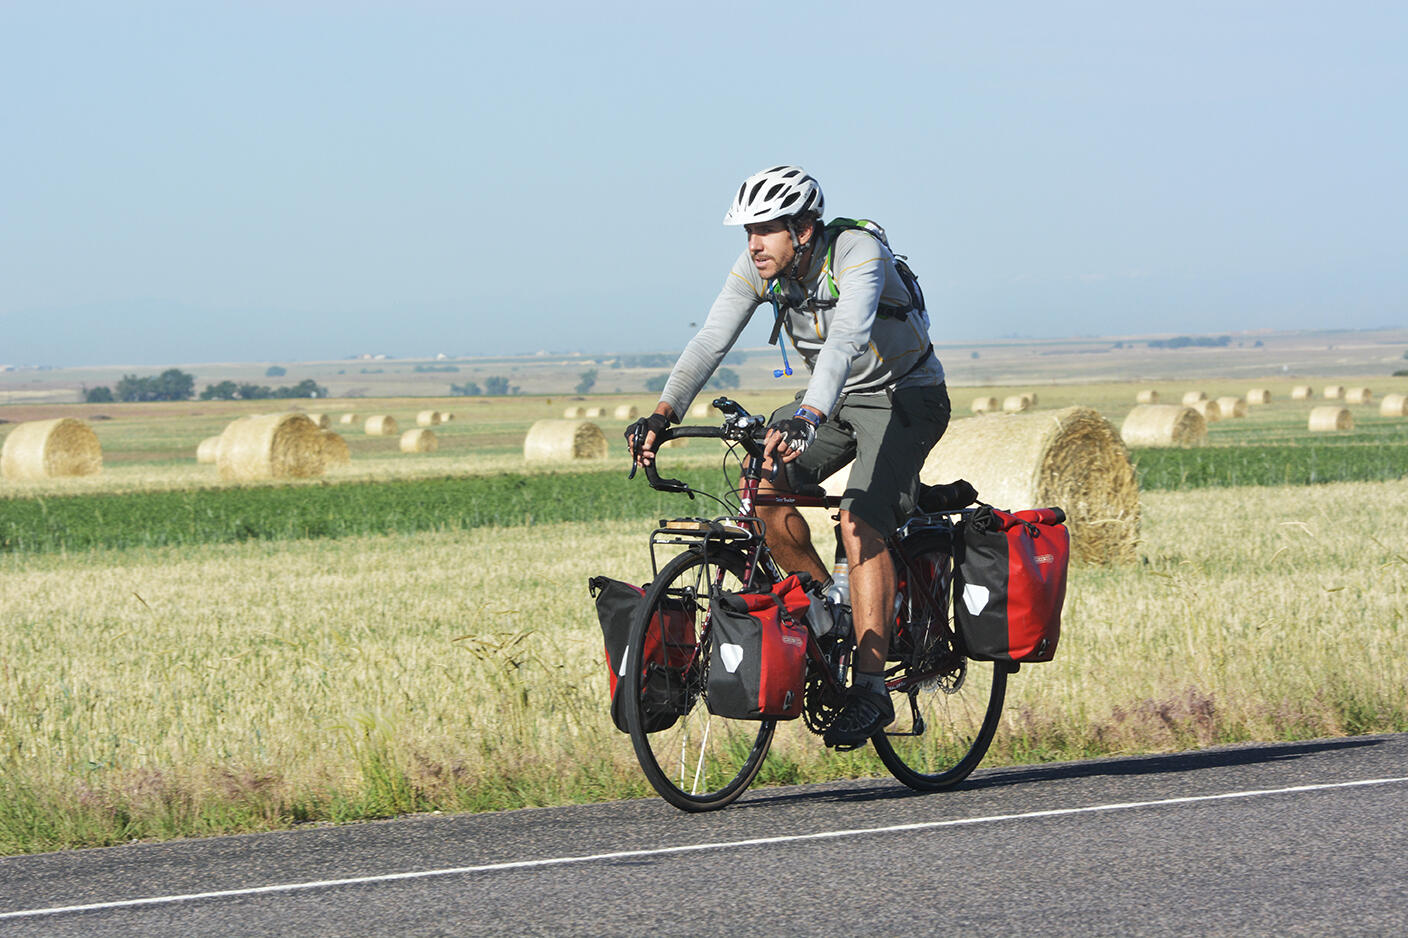 Dorian Anderson on his bike, as he attempts to complete a Big Year with limited carbon emissions. Image credit to Bill Schmoker.